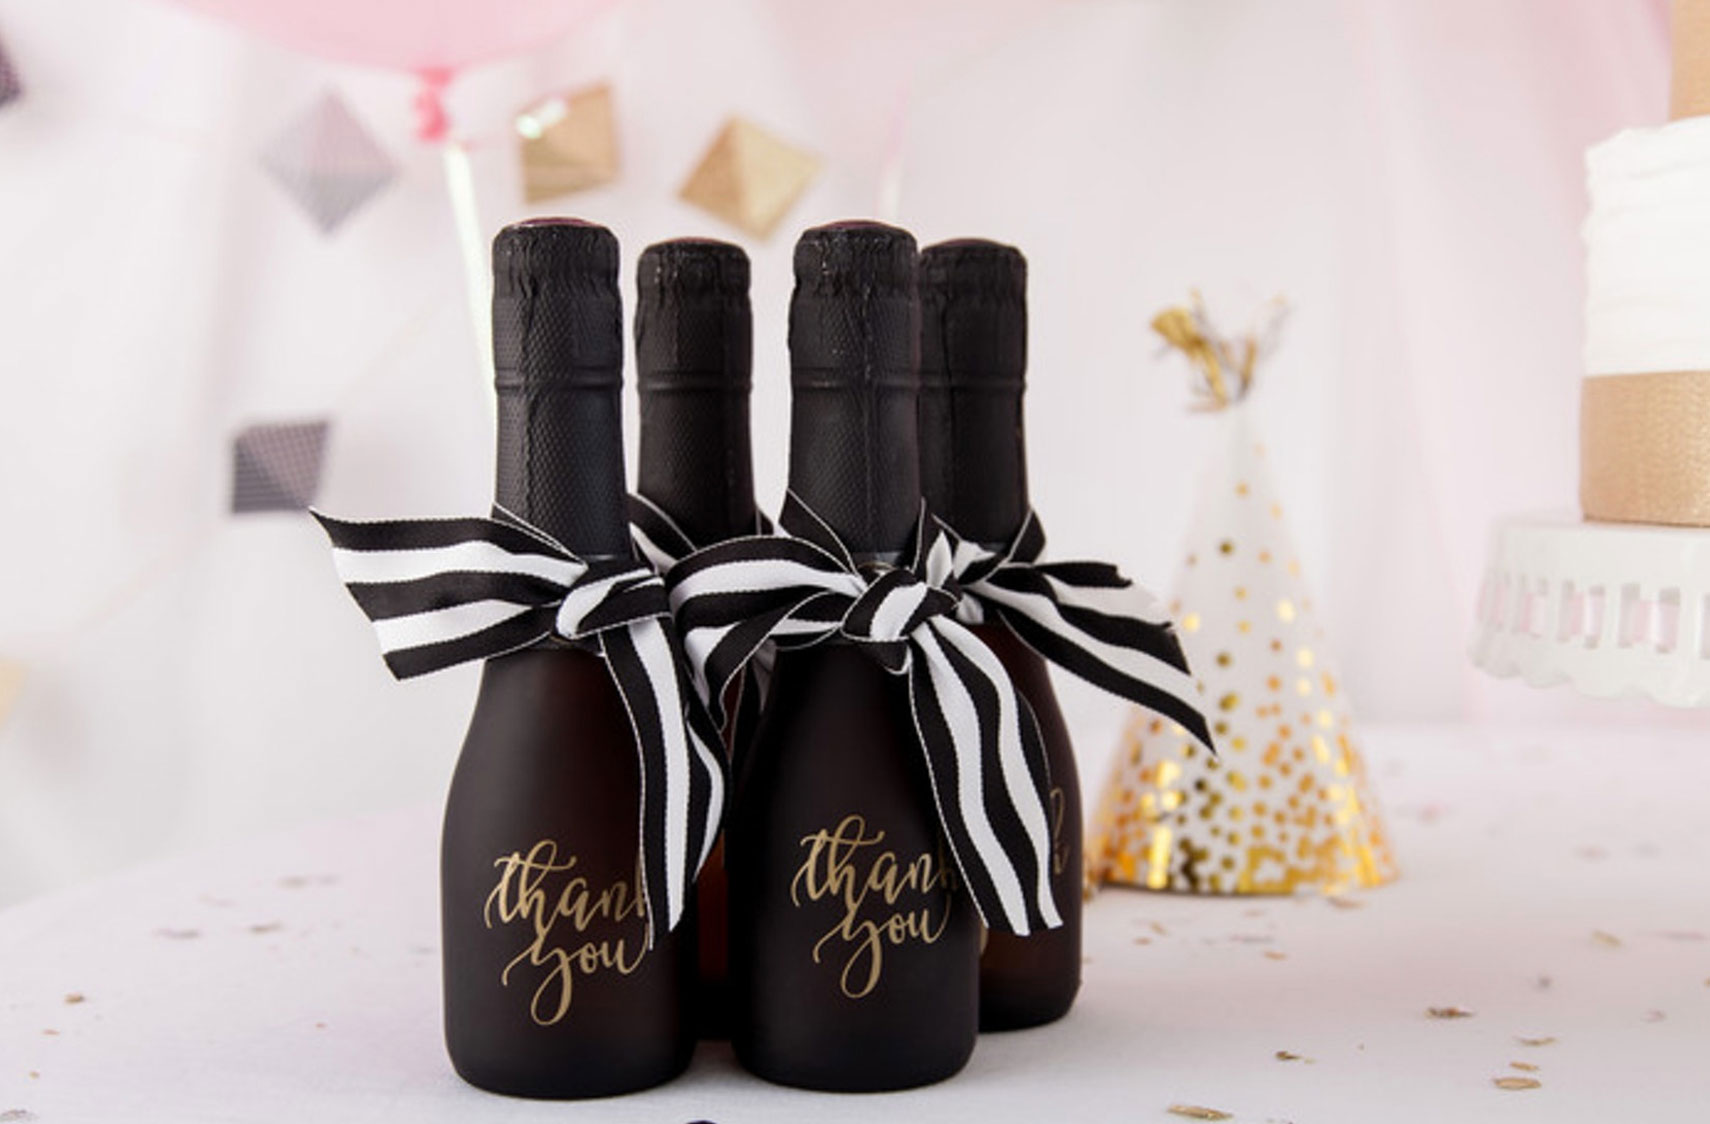 Give small champagne bottle favors as a thank you